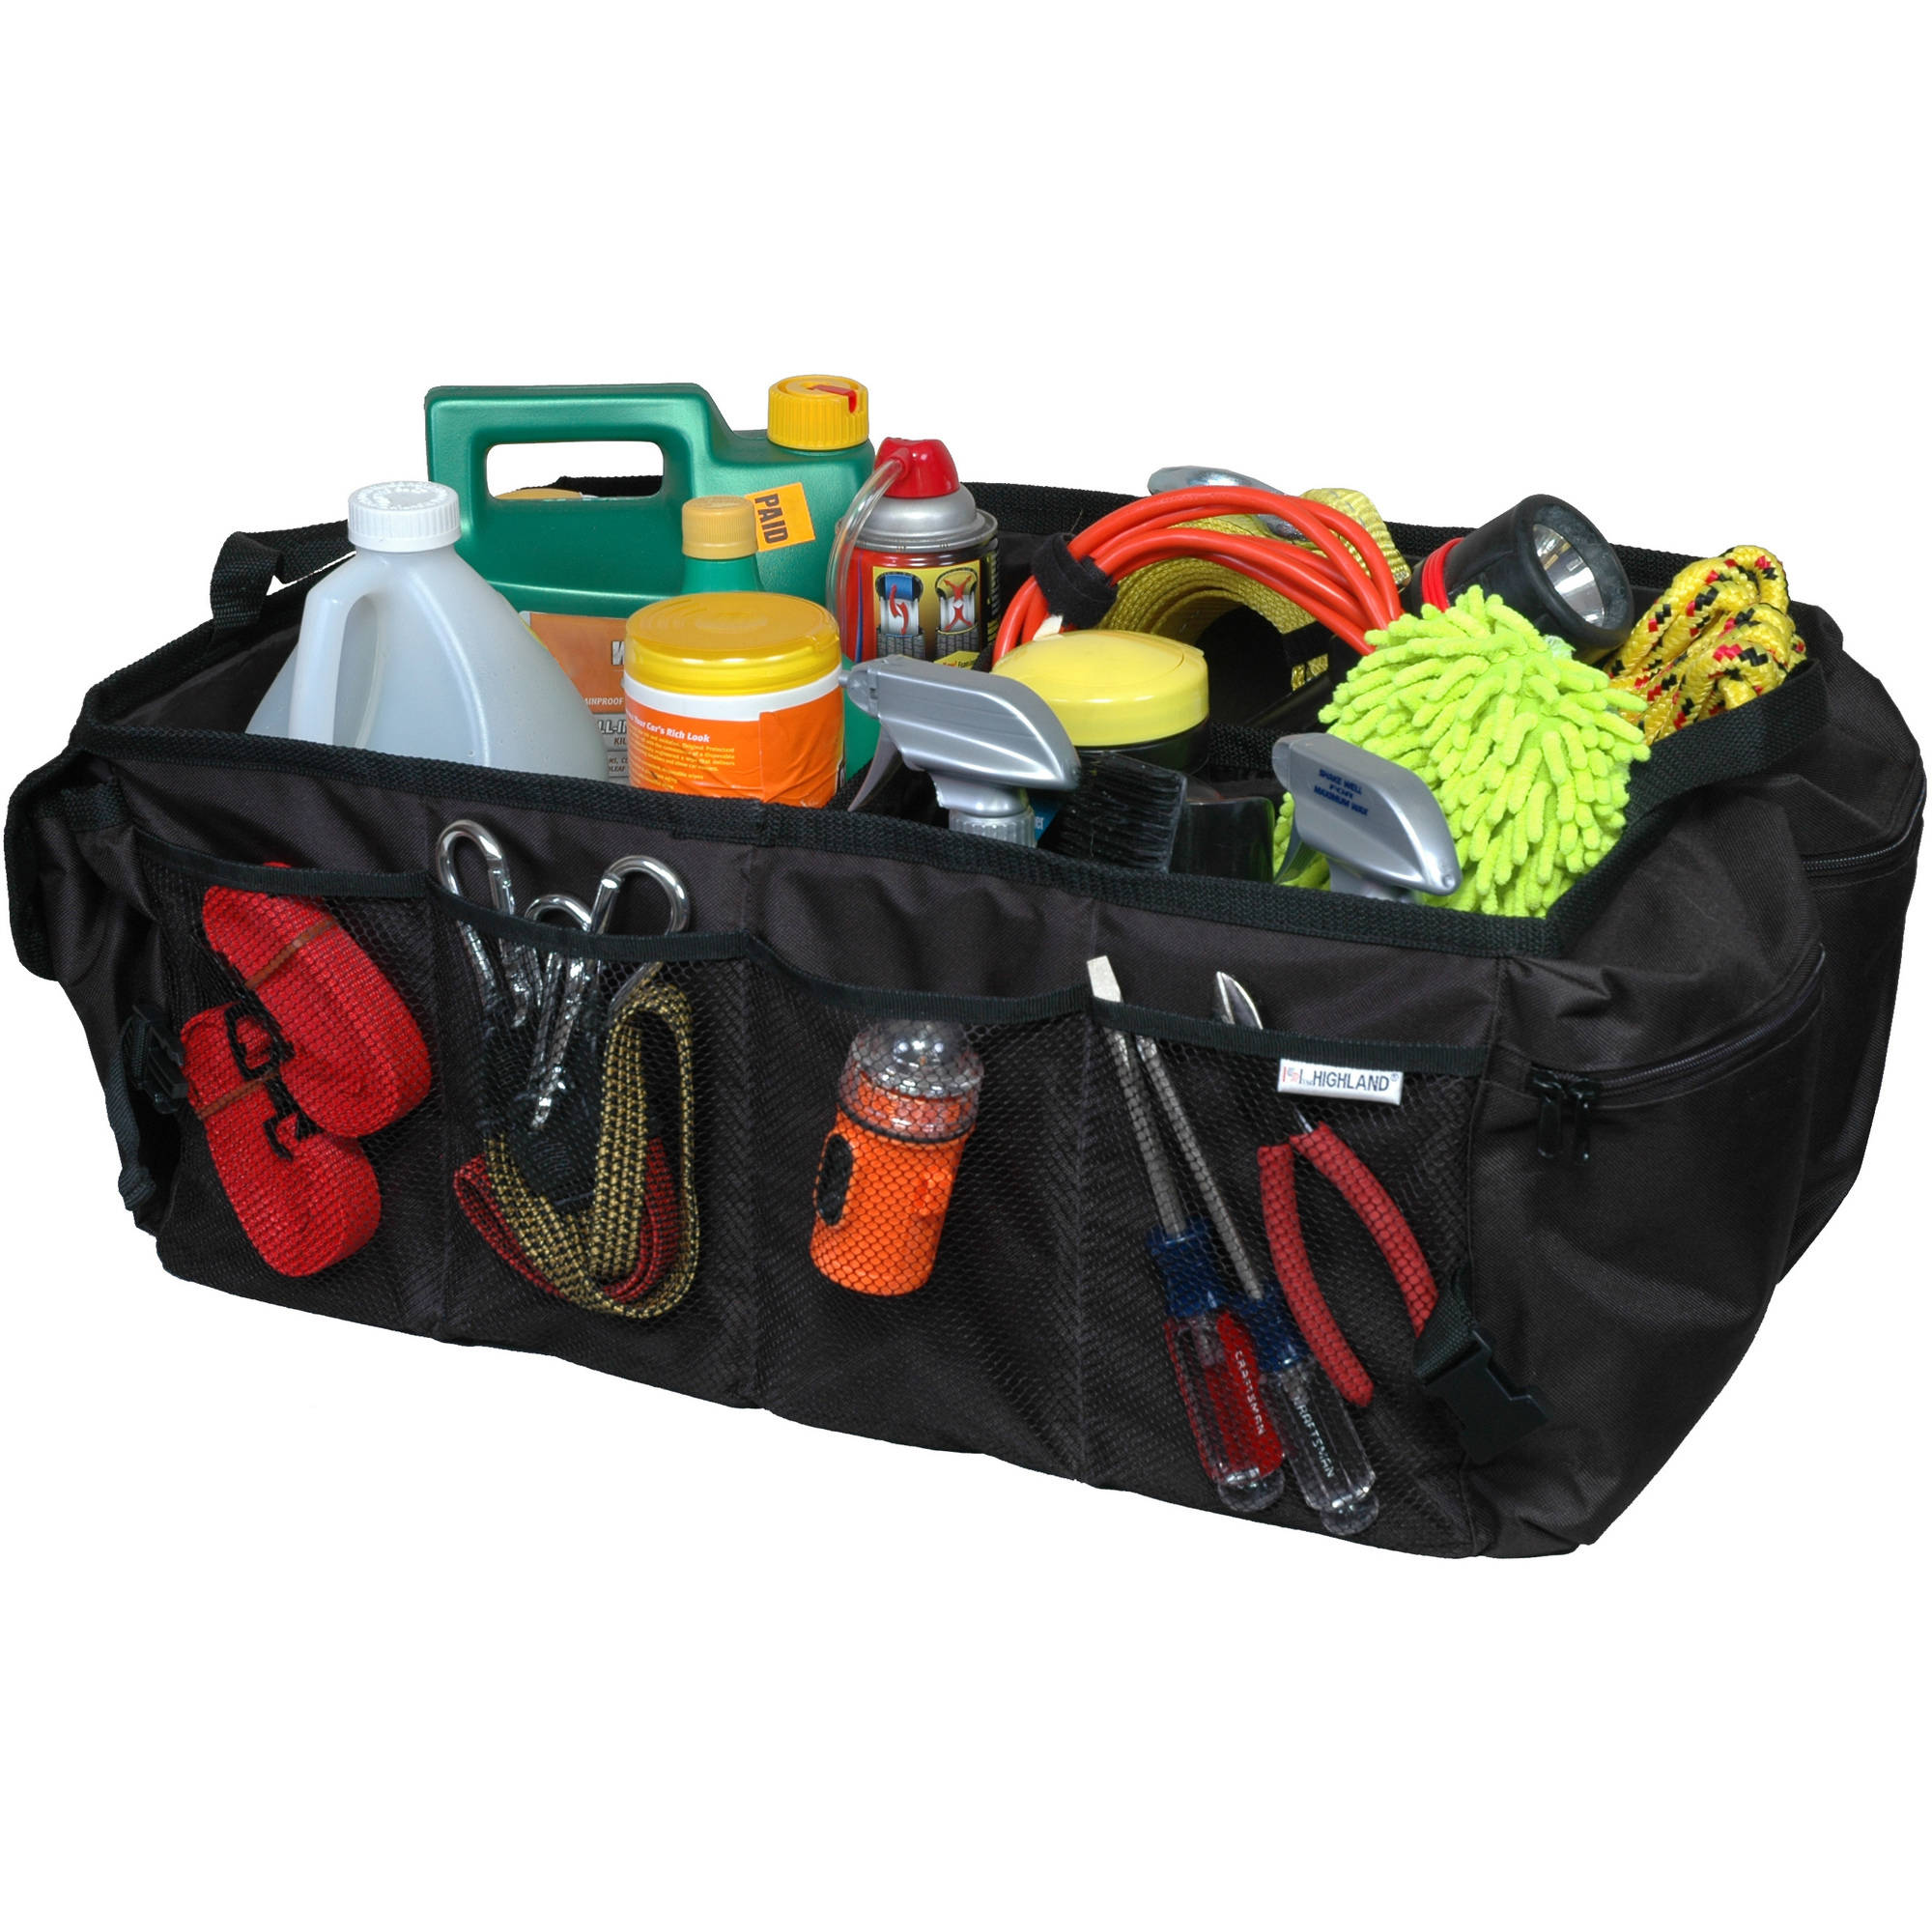 Highland Space Master Soft Sided Vehicle Organizer